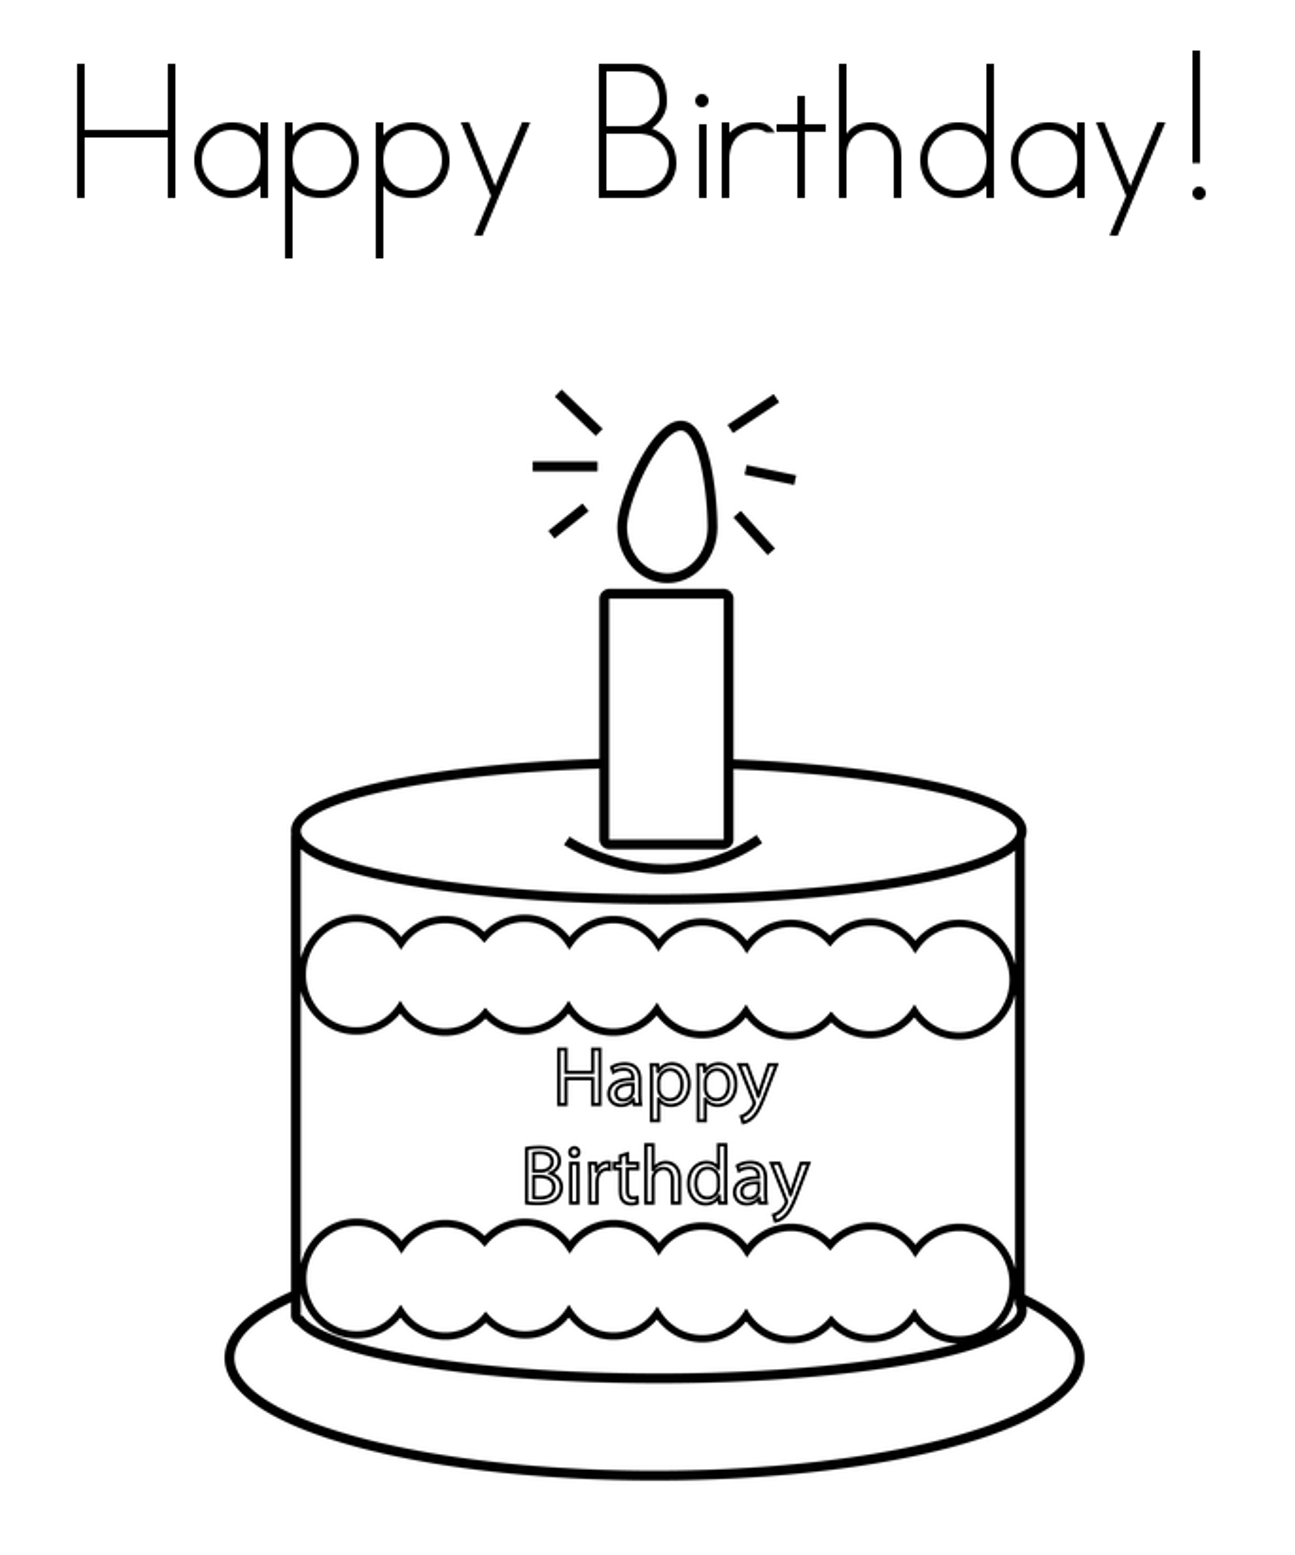 happy birthday cake coloring page Coloring Pinterest Birthday